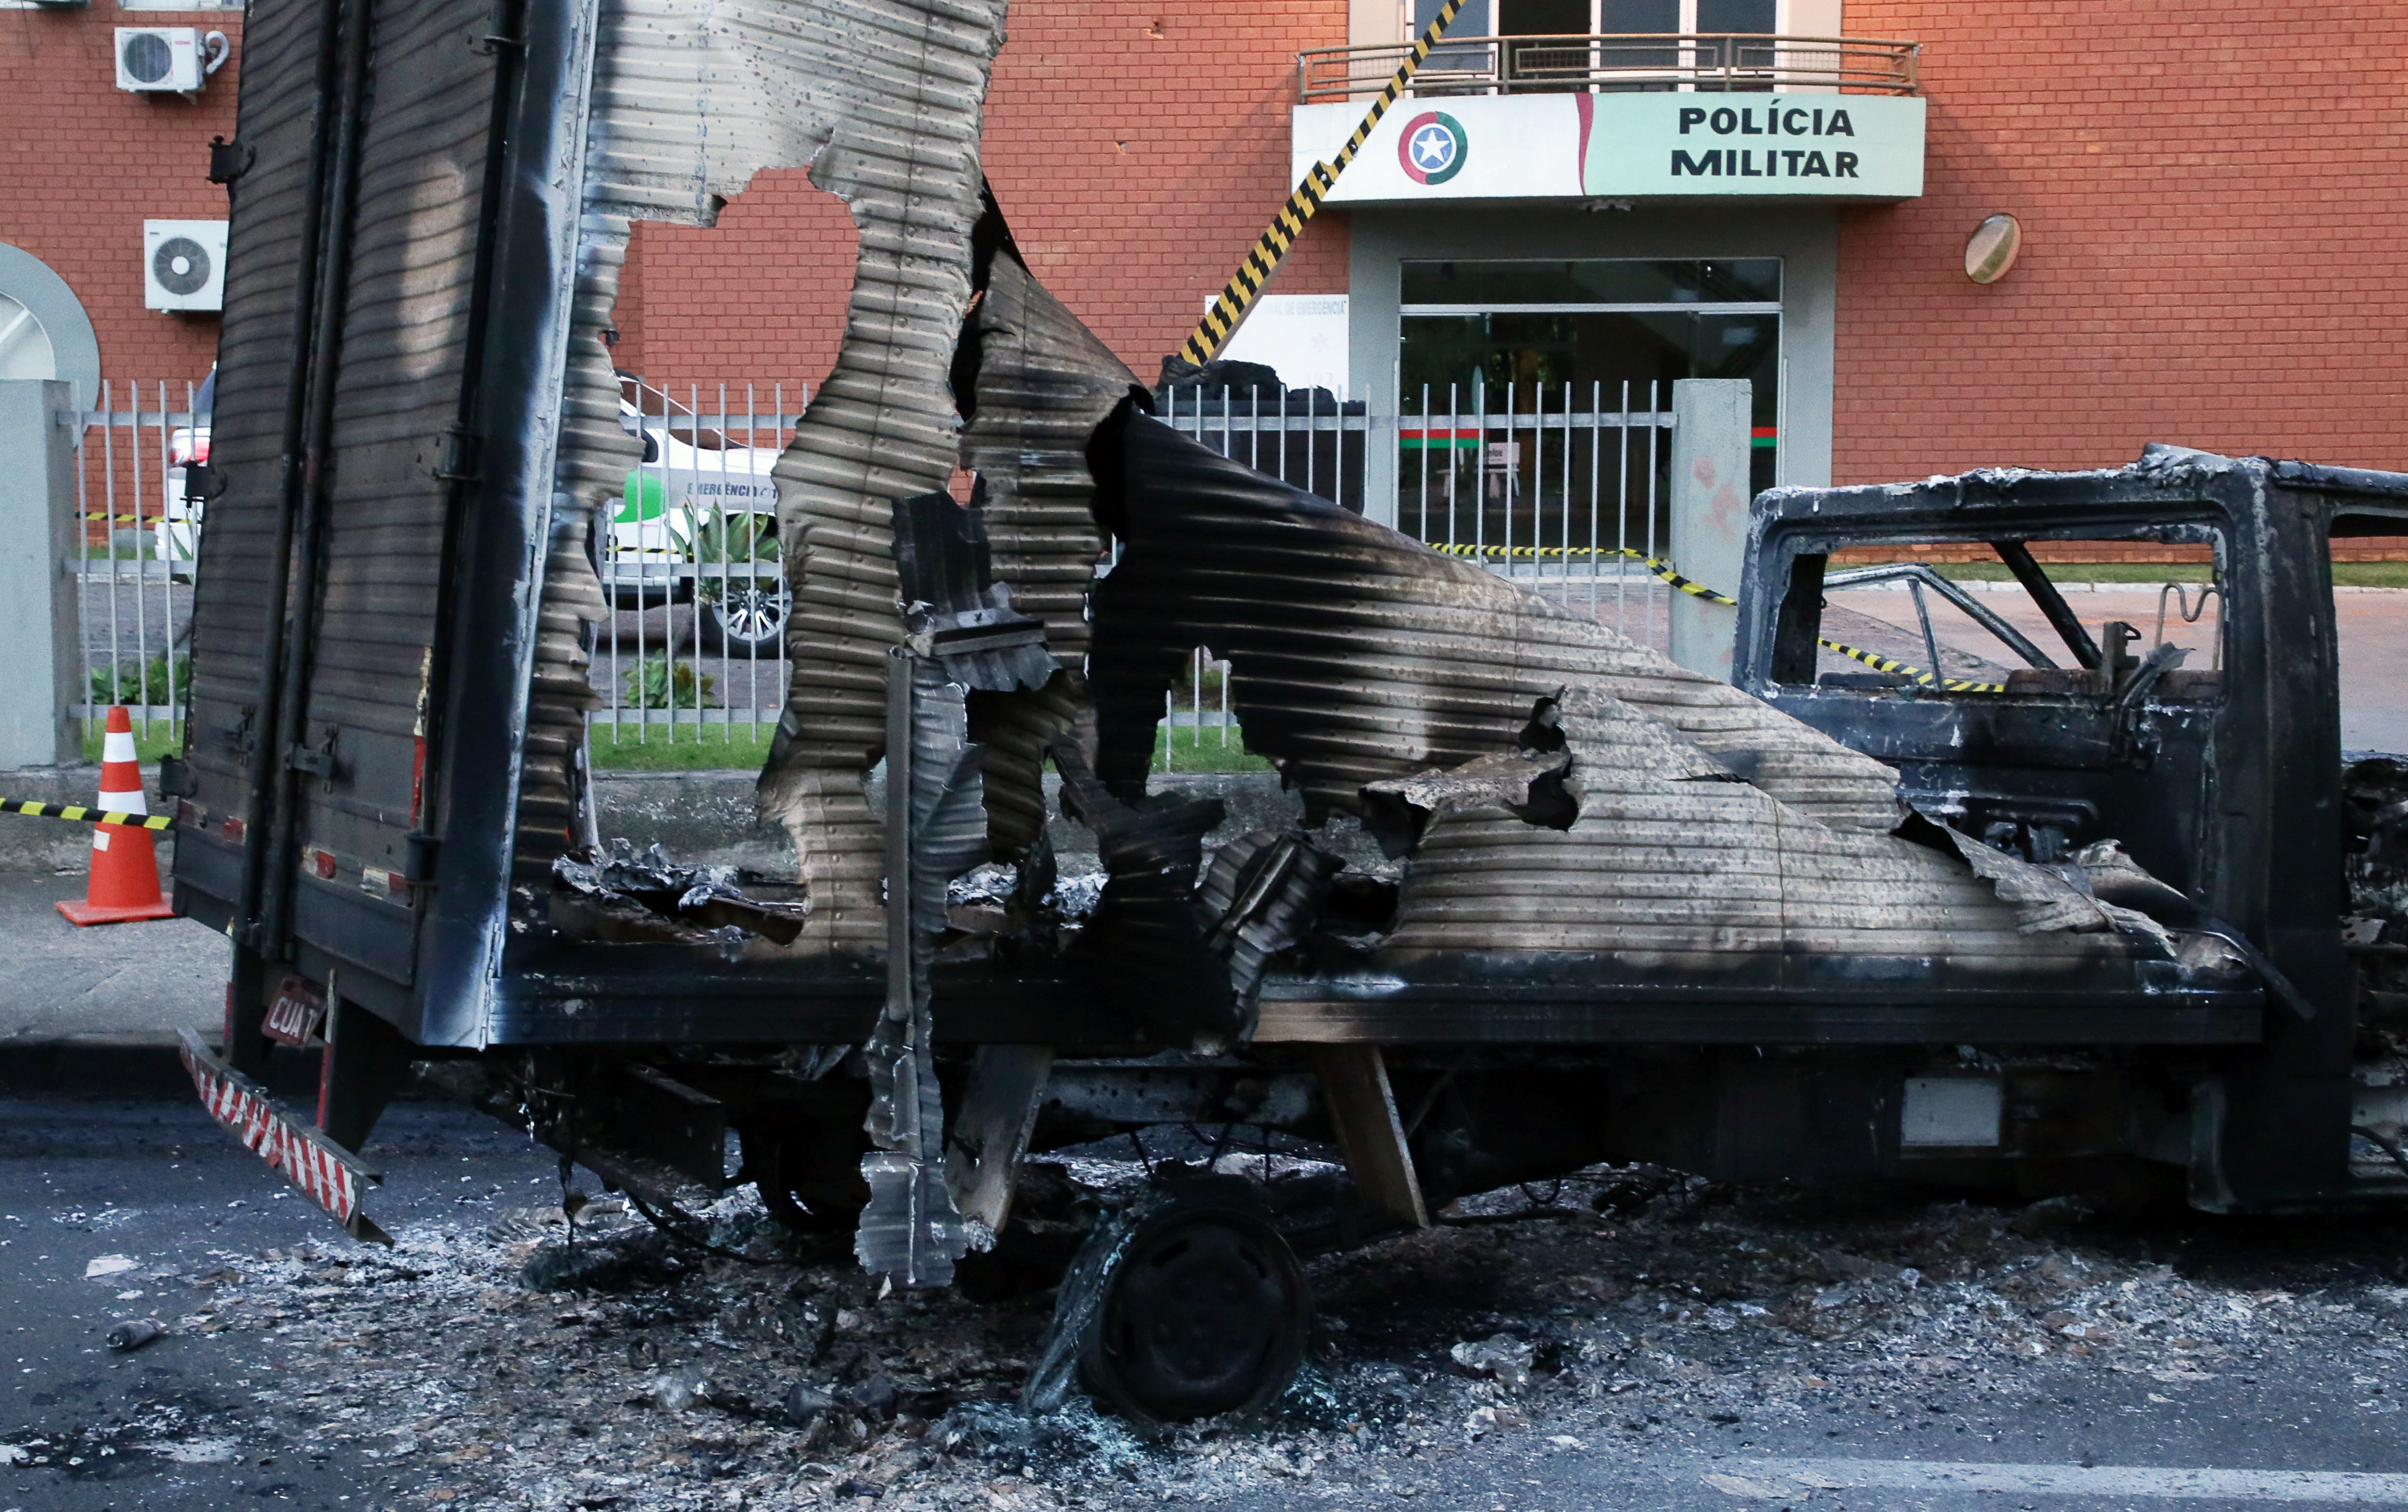 Brazilian bank robbers seize another city, sow chaos, death